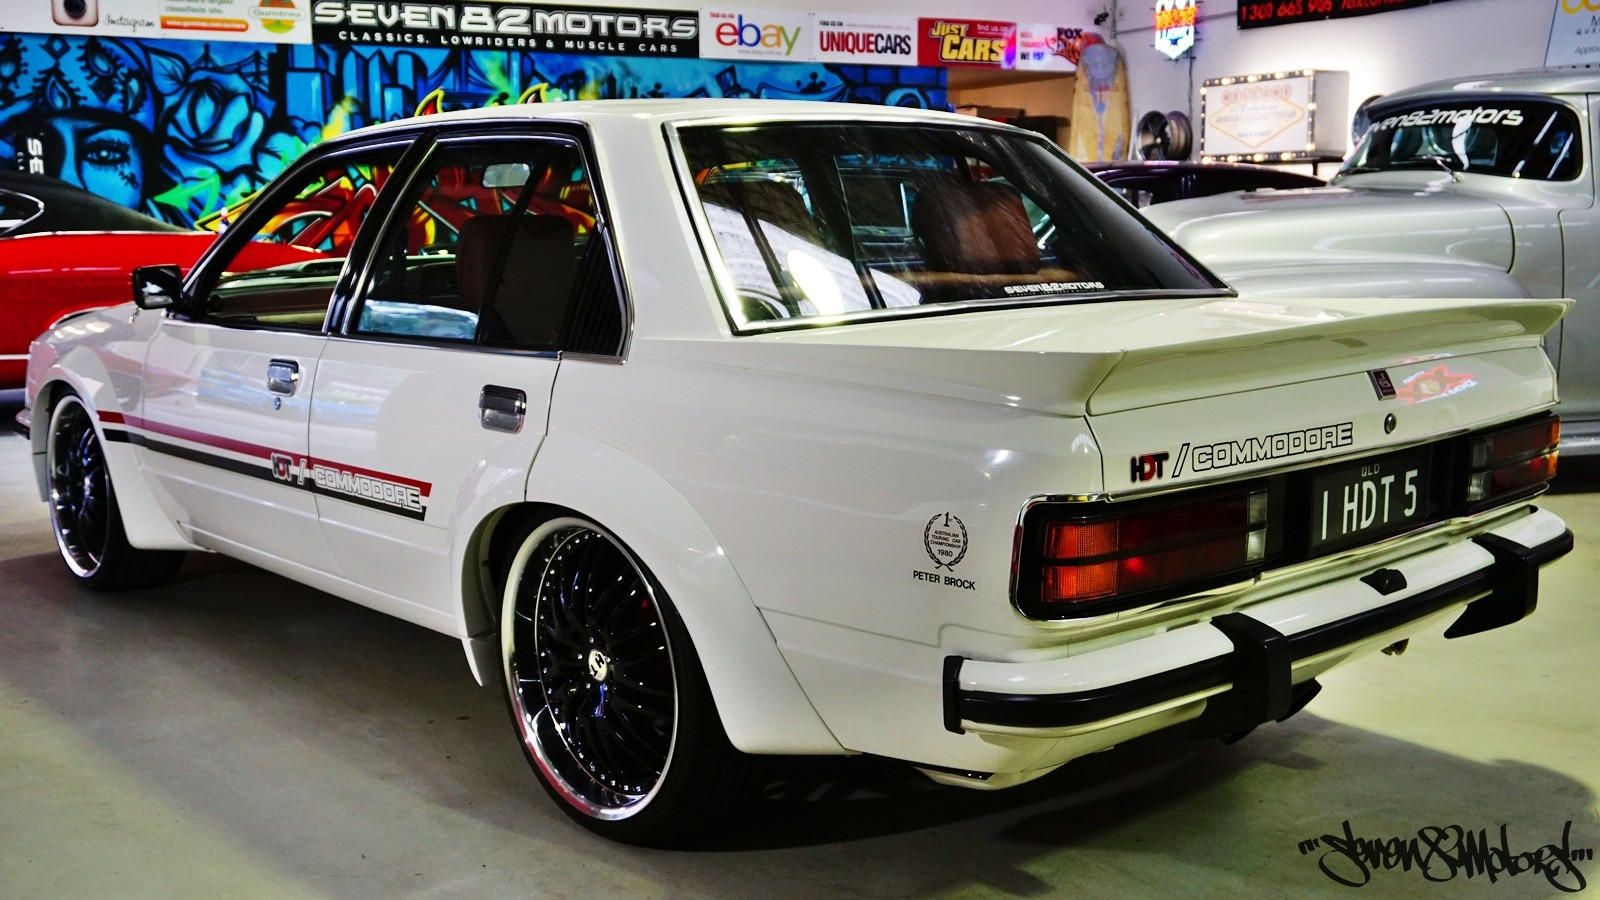 Sold 1980 Vc Hdt Commodore Seven82motors